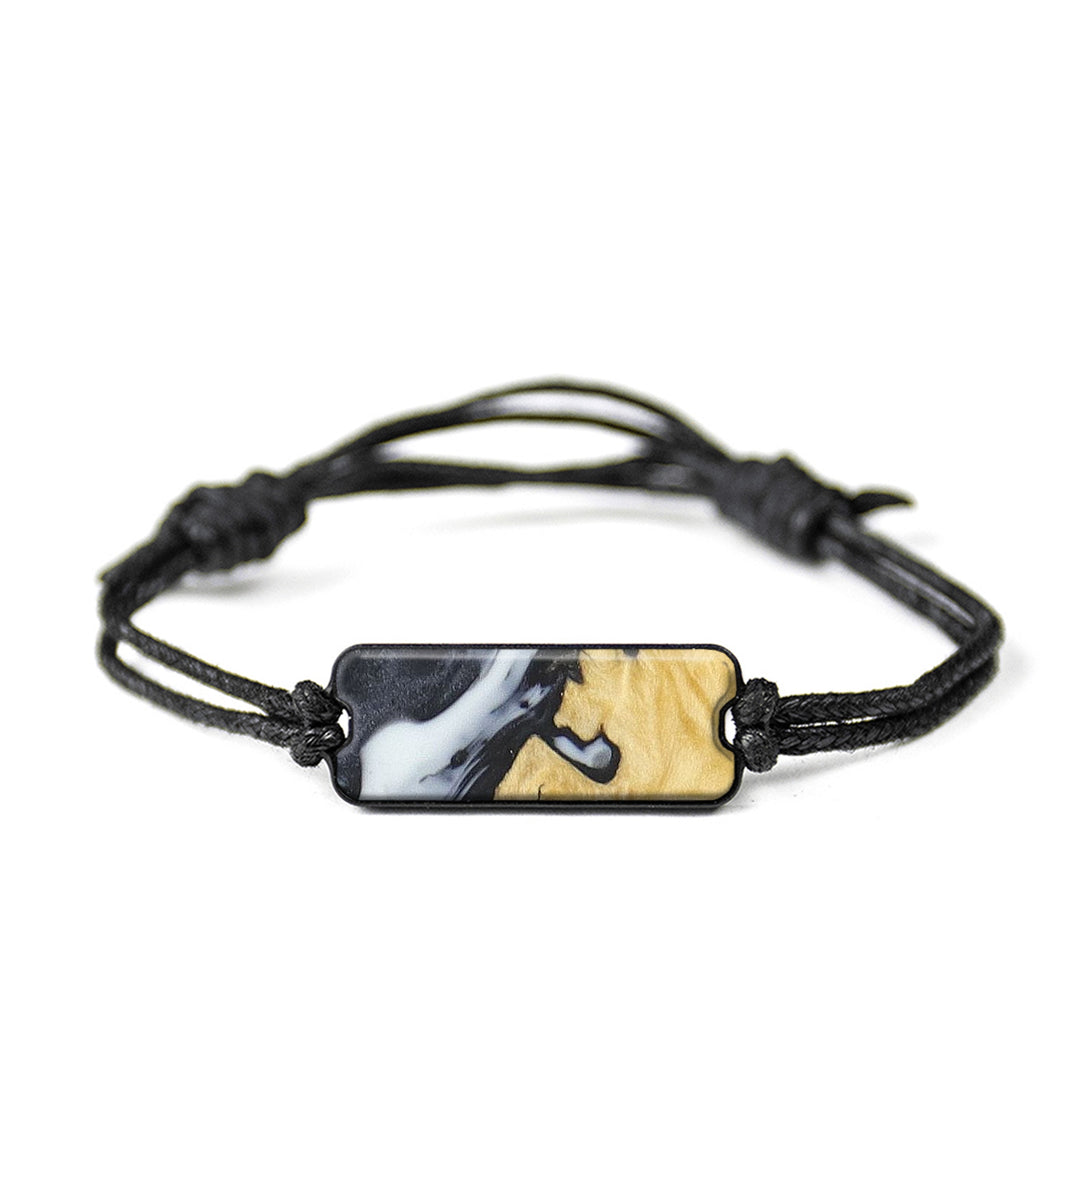 Classic Wood+Resin Bracelet - Letta (Black & White, 368576)